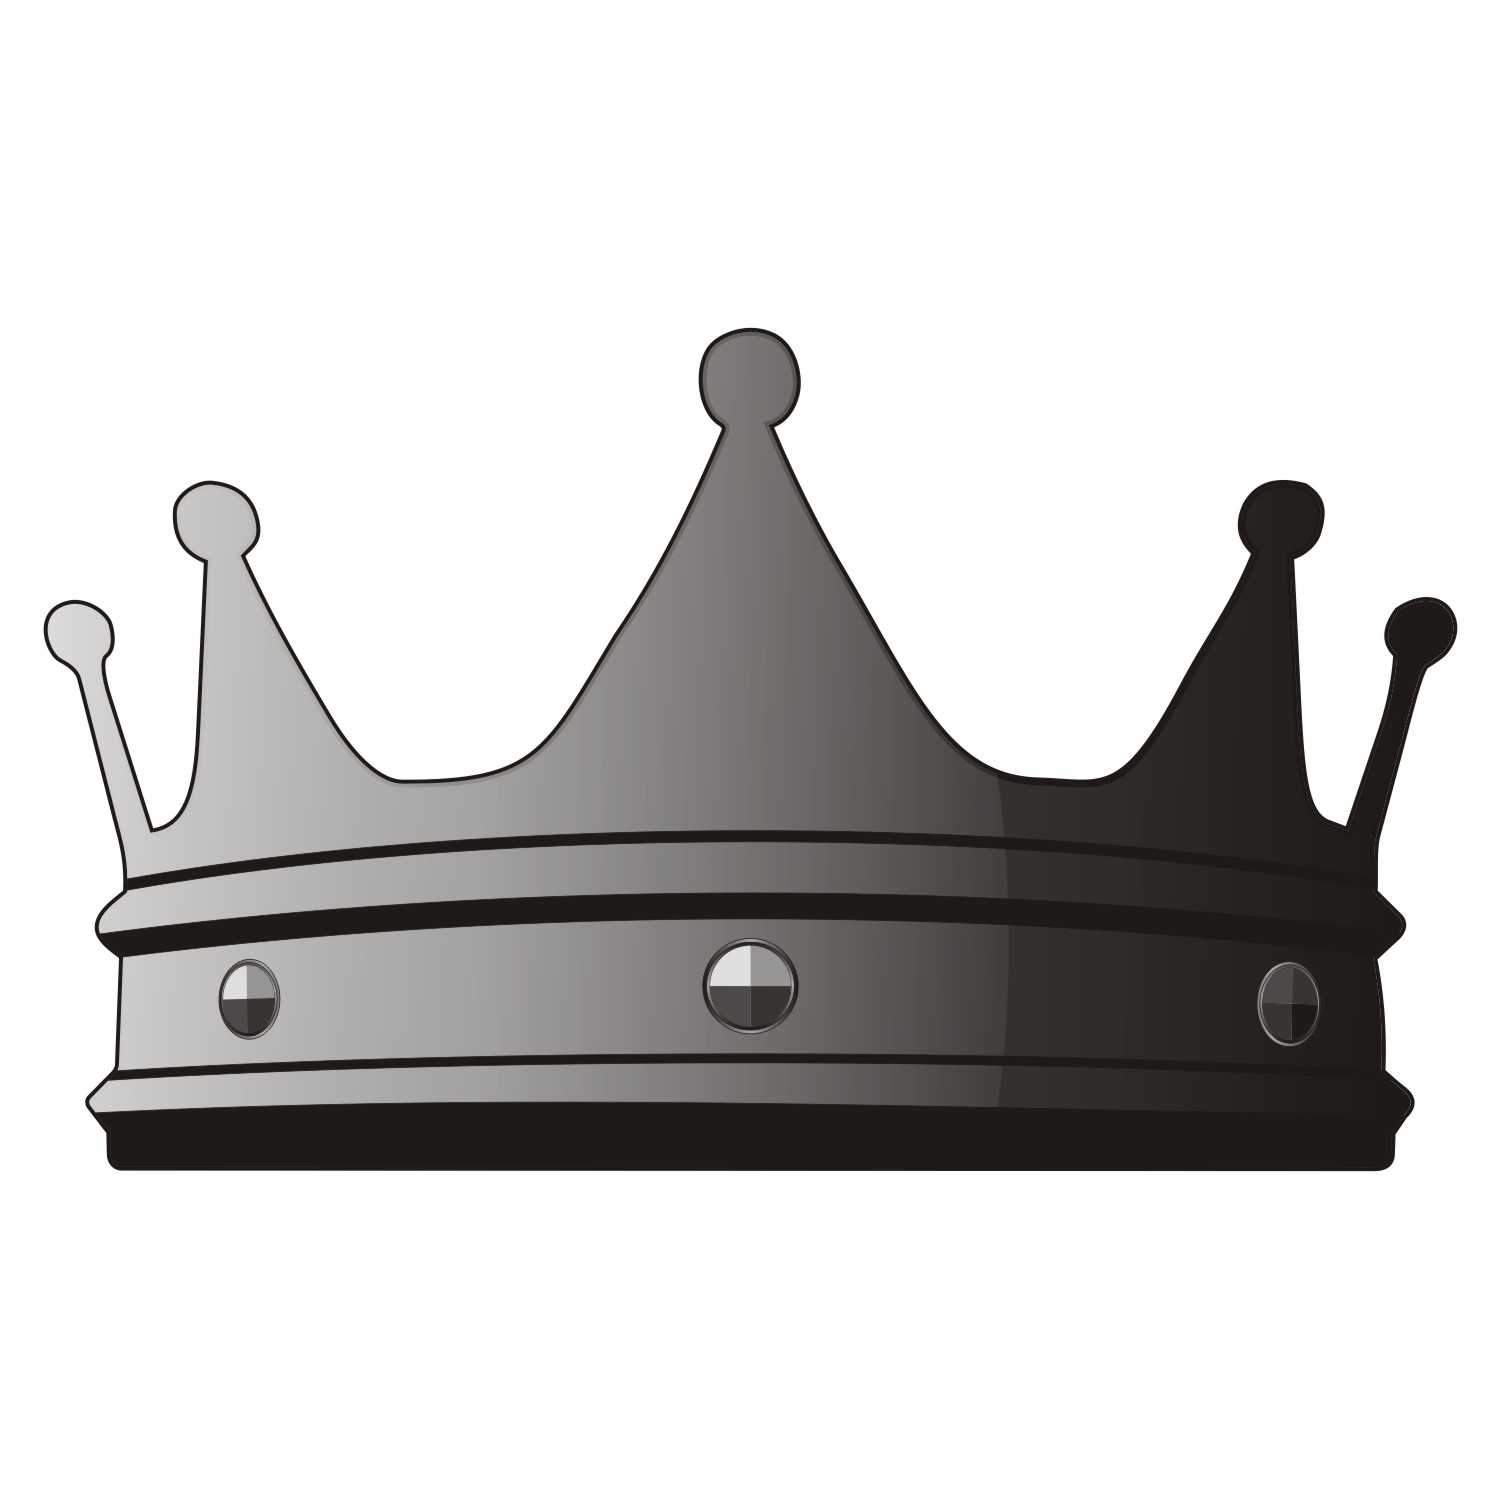 free vector clipart crown - photo #31